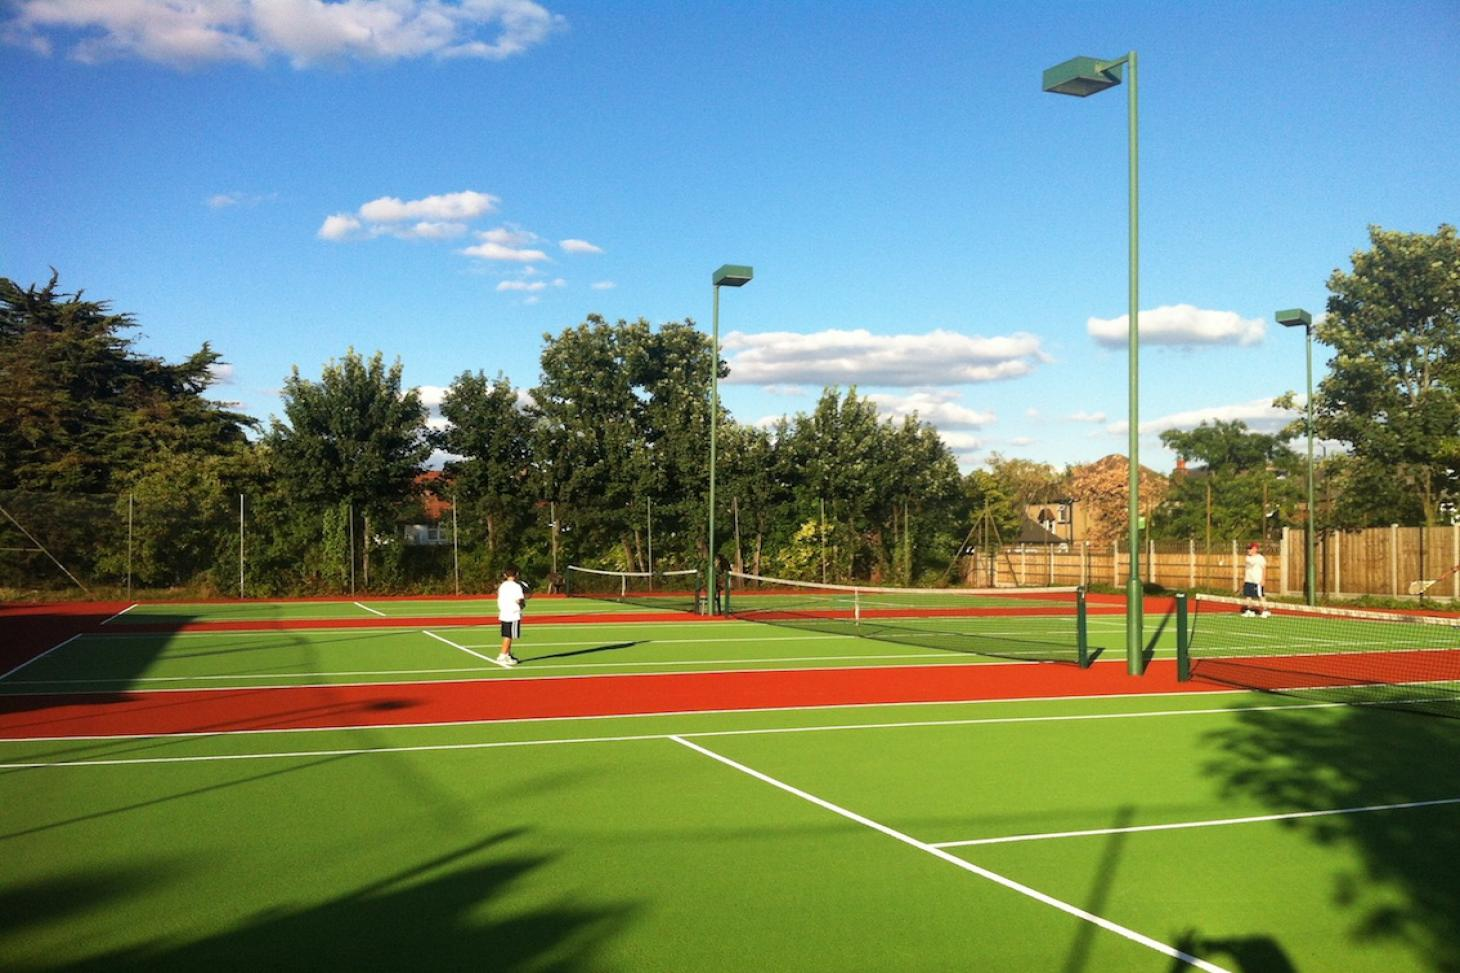 Coles Green Lawn Tennis Club Outdoor | Hard (macadam) tennis court